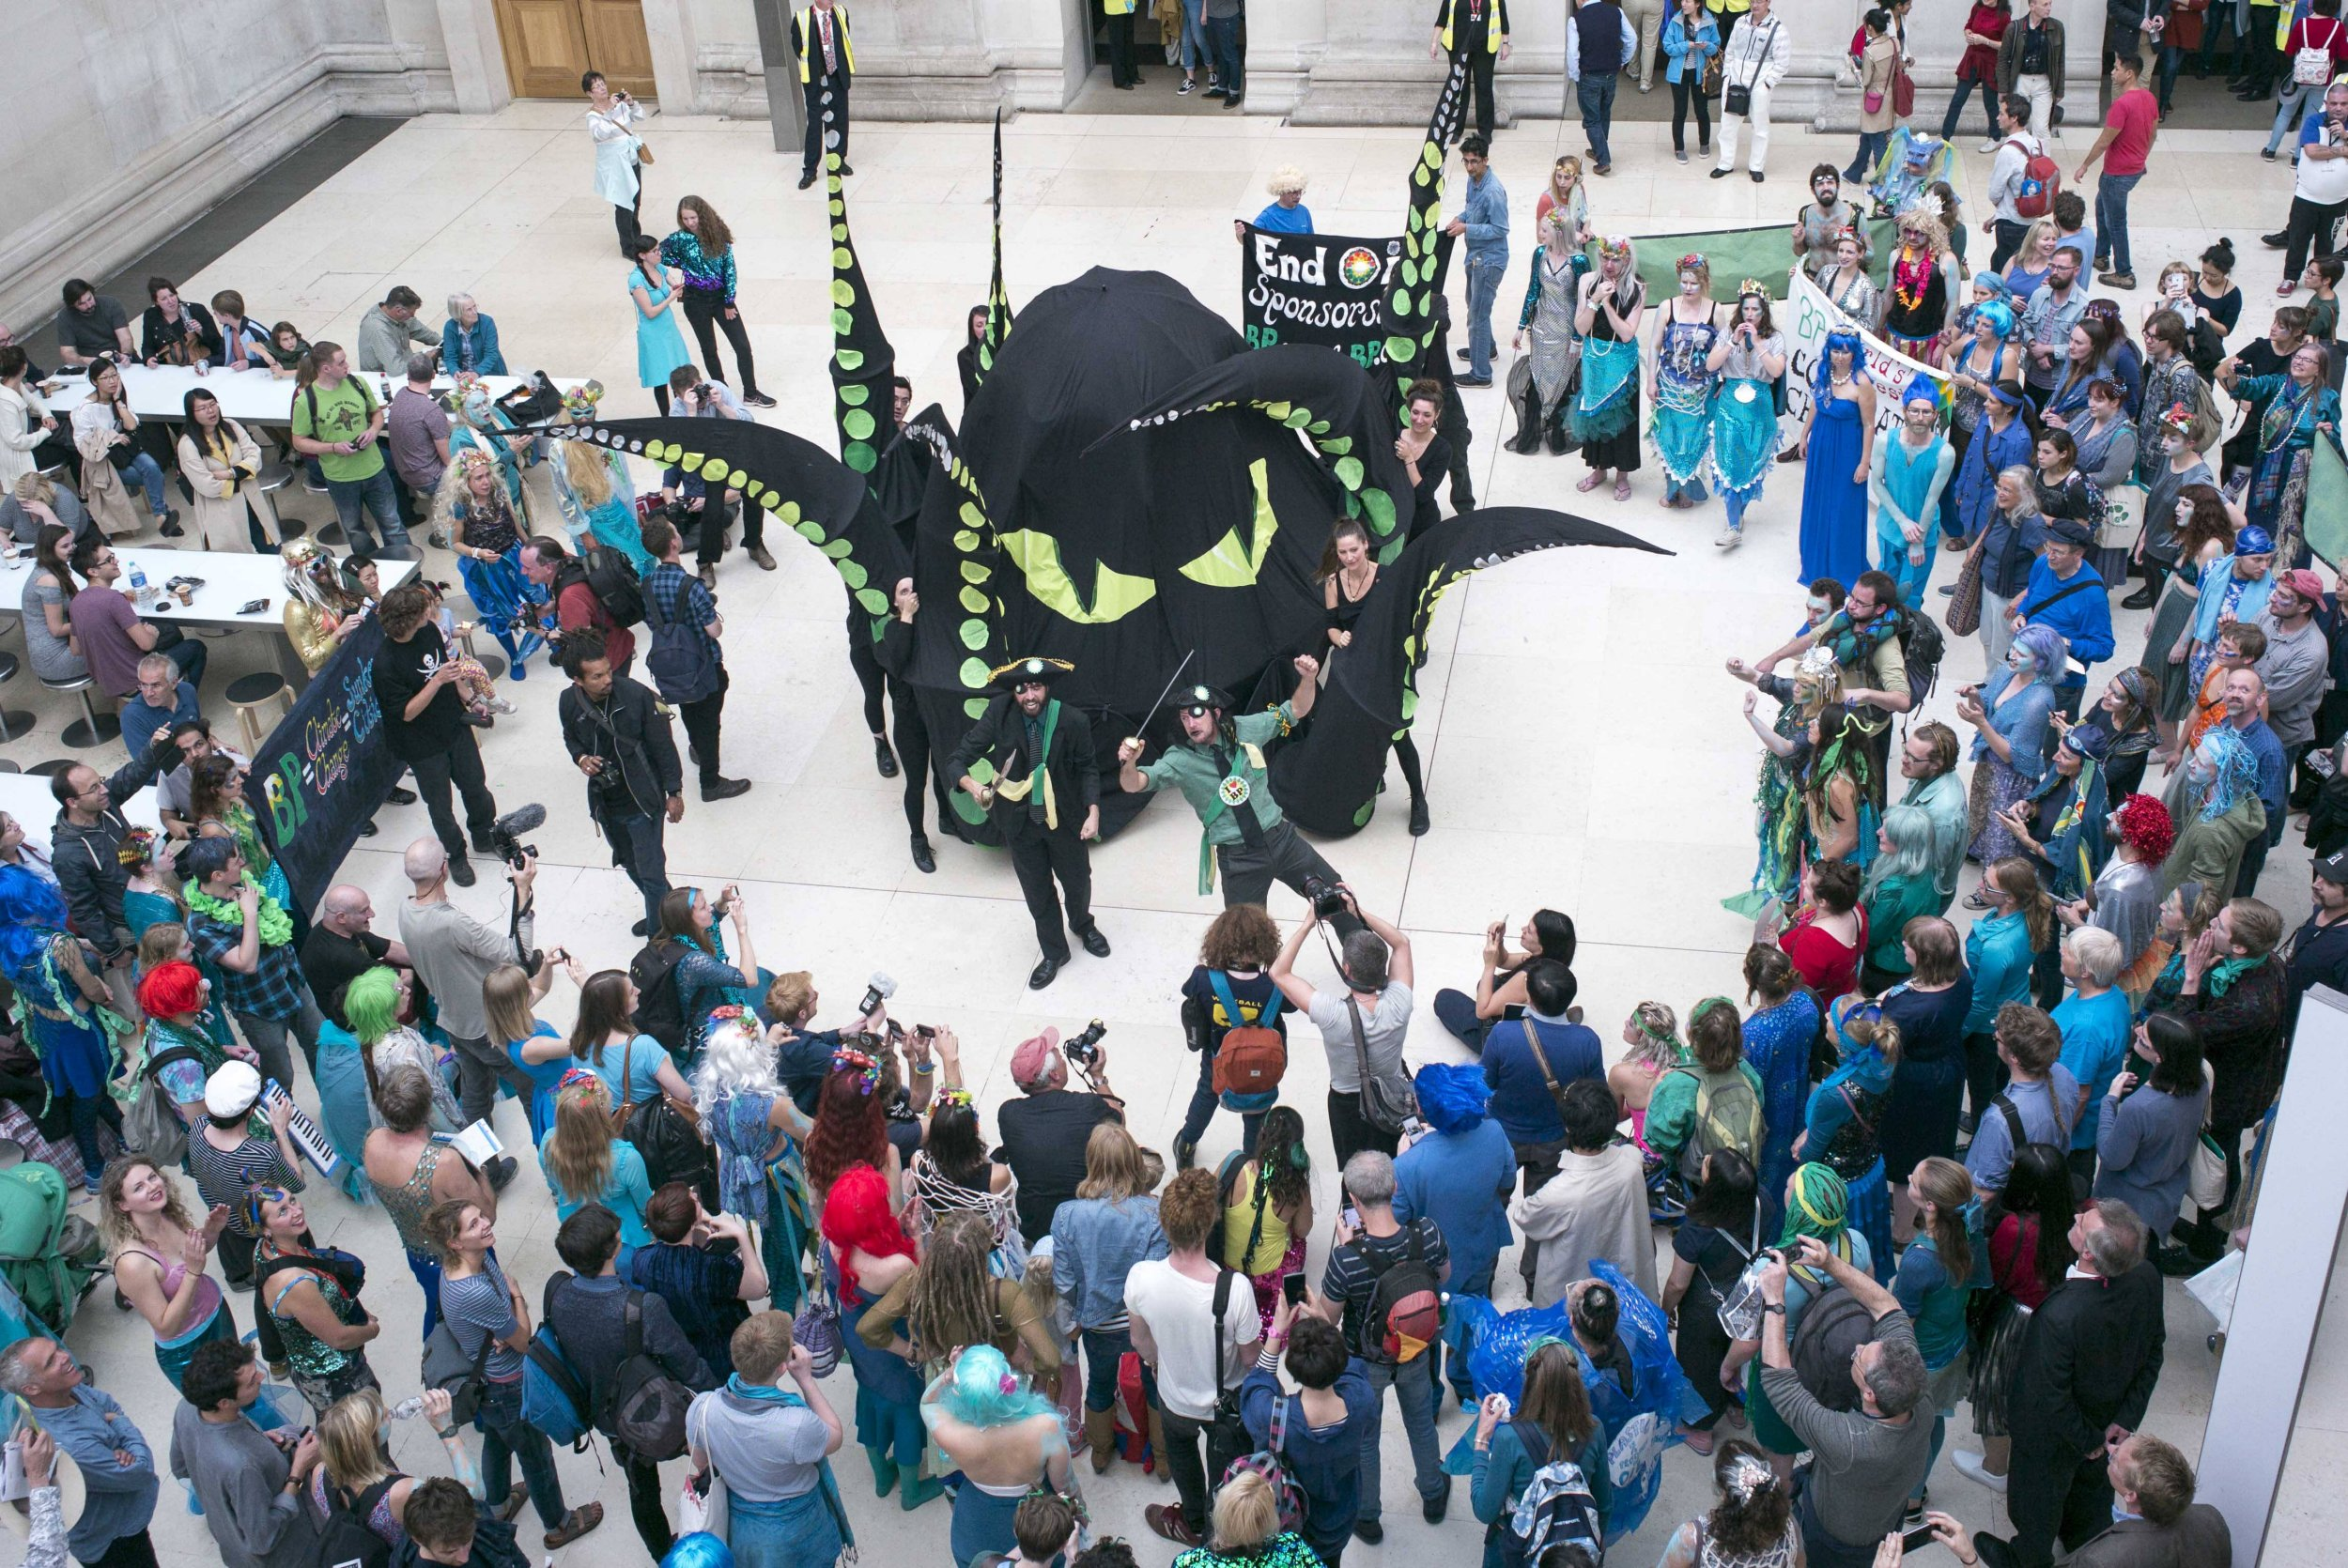 A 'splashmob' protest lead by theatrical protest group BP or not BP? inside the British Museum, central London, in response to BPís controversial sponsorship of the museumís current ëSunken Citiesí exhibition. PRESS ASSOCIATION Photo. Picture date: Sunday September 25, 2016. See PA story PROTEST BP. Photo credit should read: Rick Findler/PA Wire